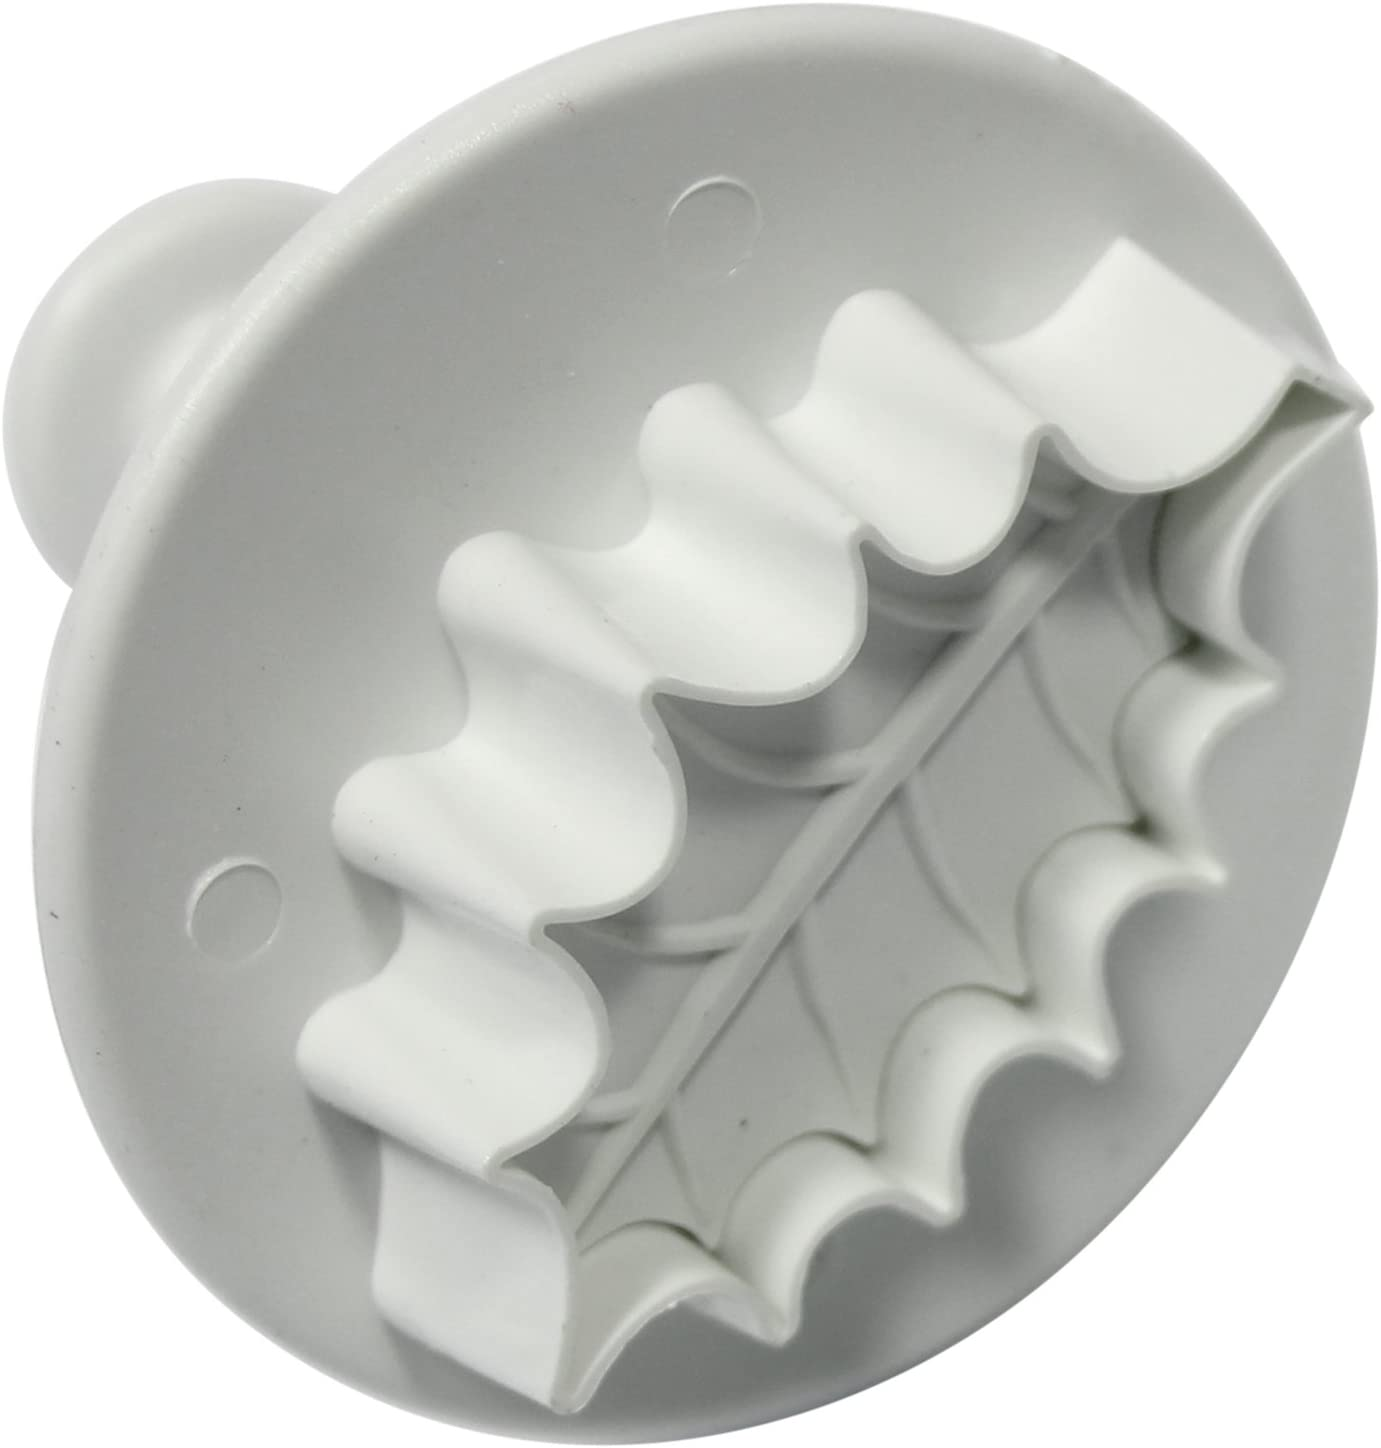 Medium PME Veined Holly Leaf Plunger Cutters Small Large Sizes Set of 3